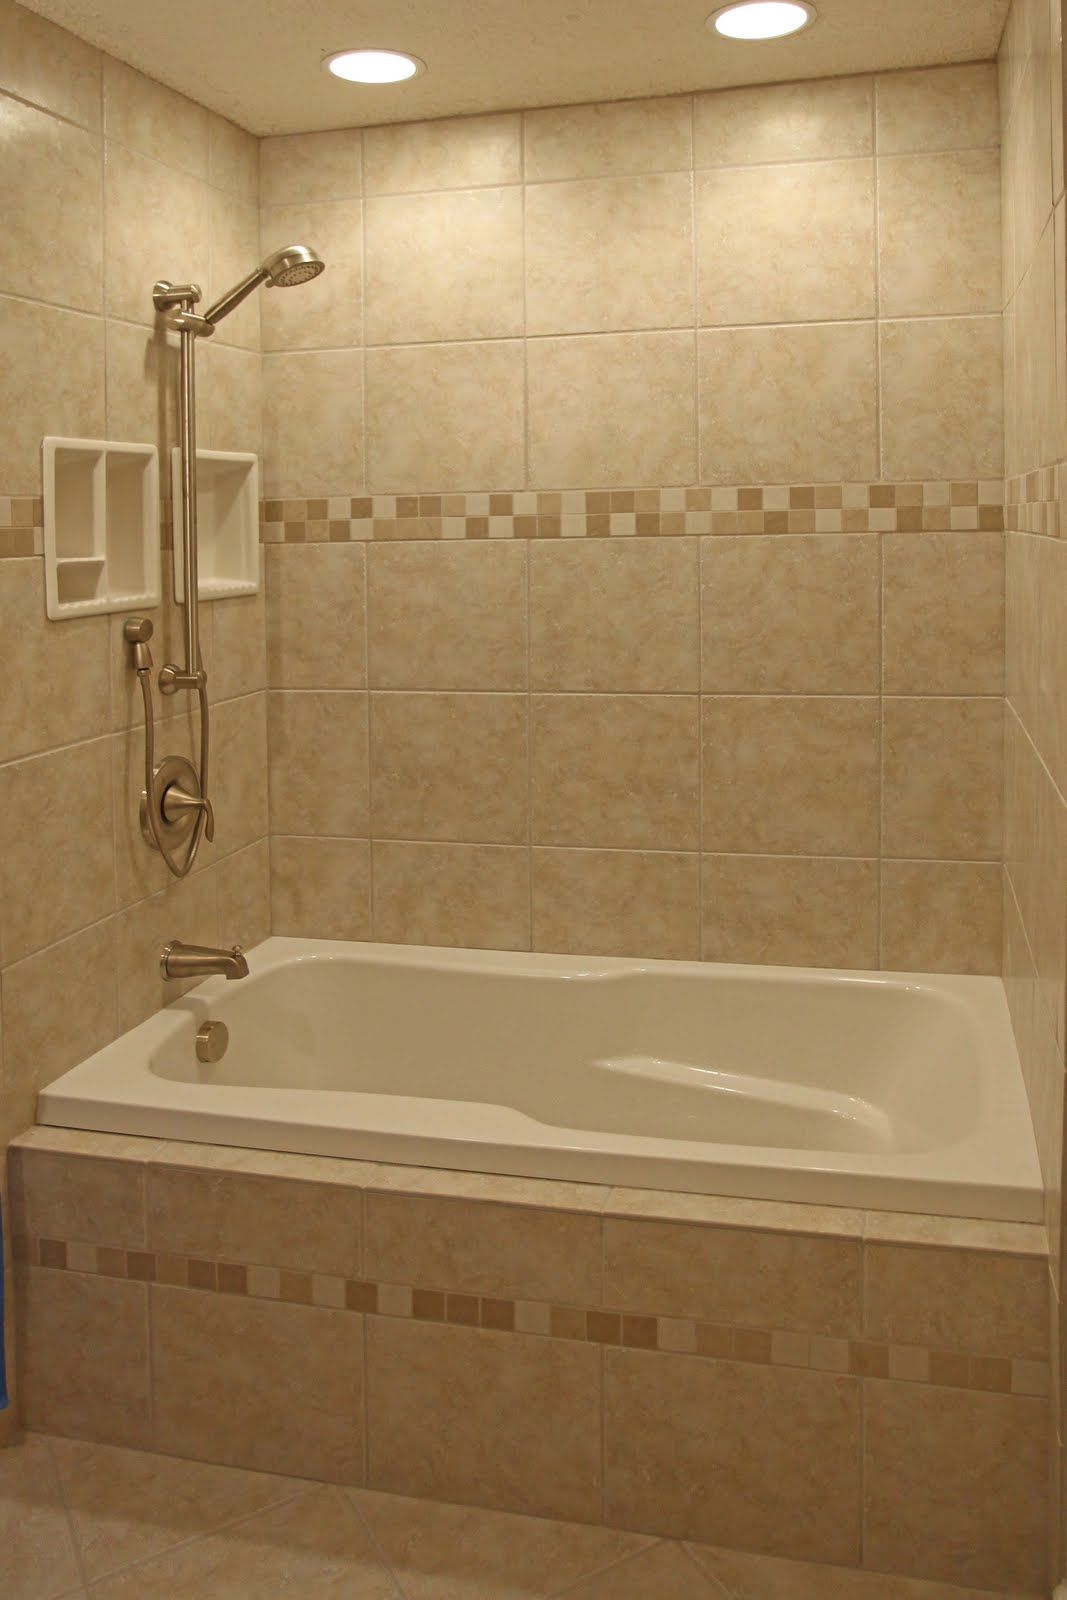 Bathroom designs pictures with tiles - Remodeling Bathroom Shower With Tile 173 Remodeling Bathroom Shower With Tile